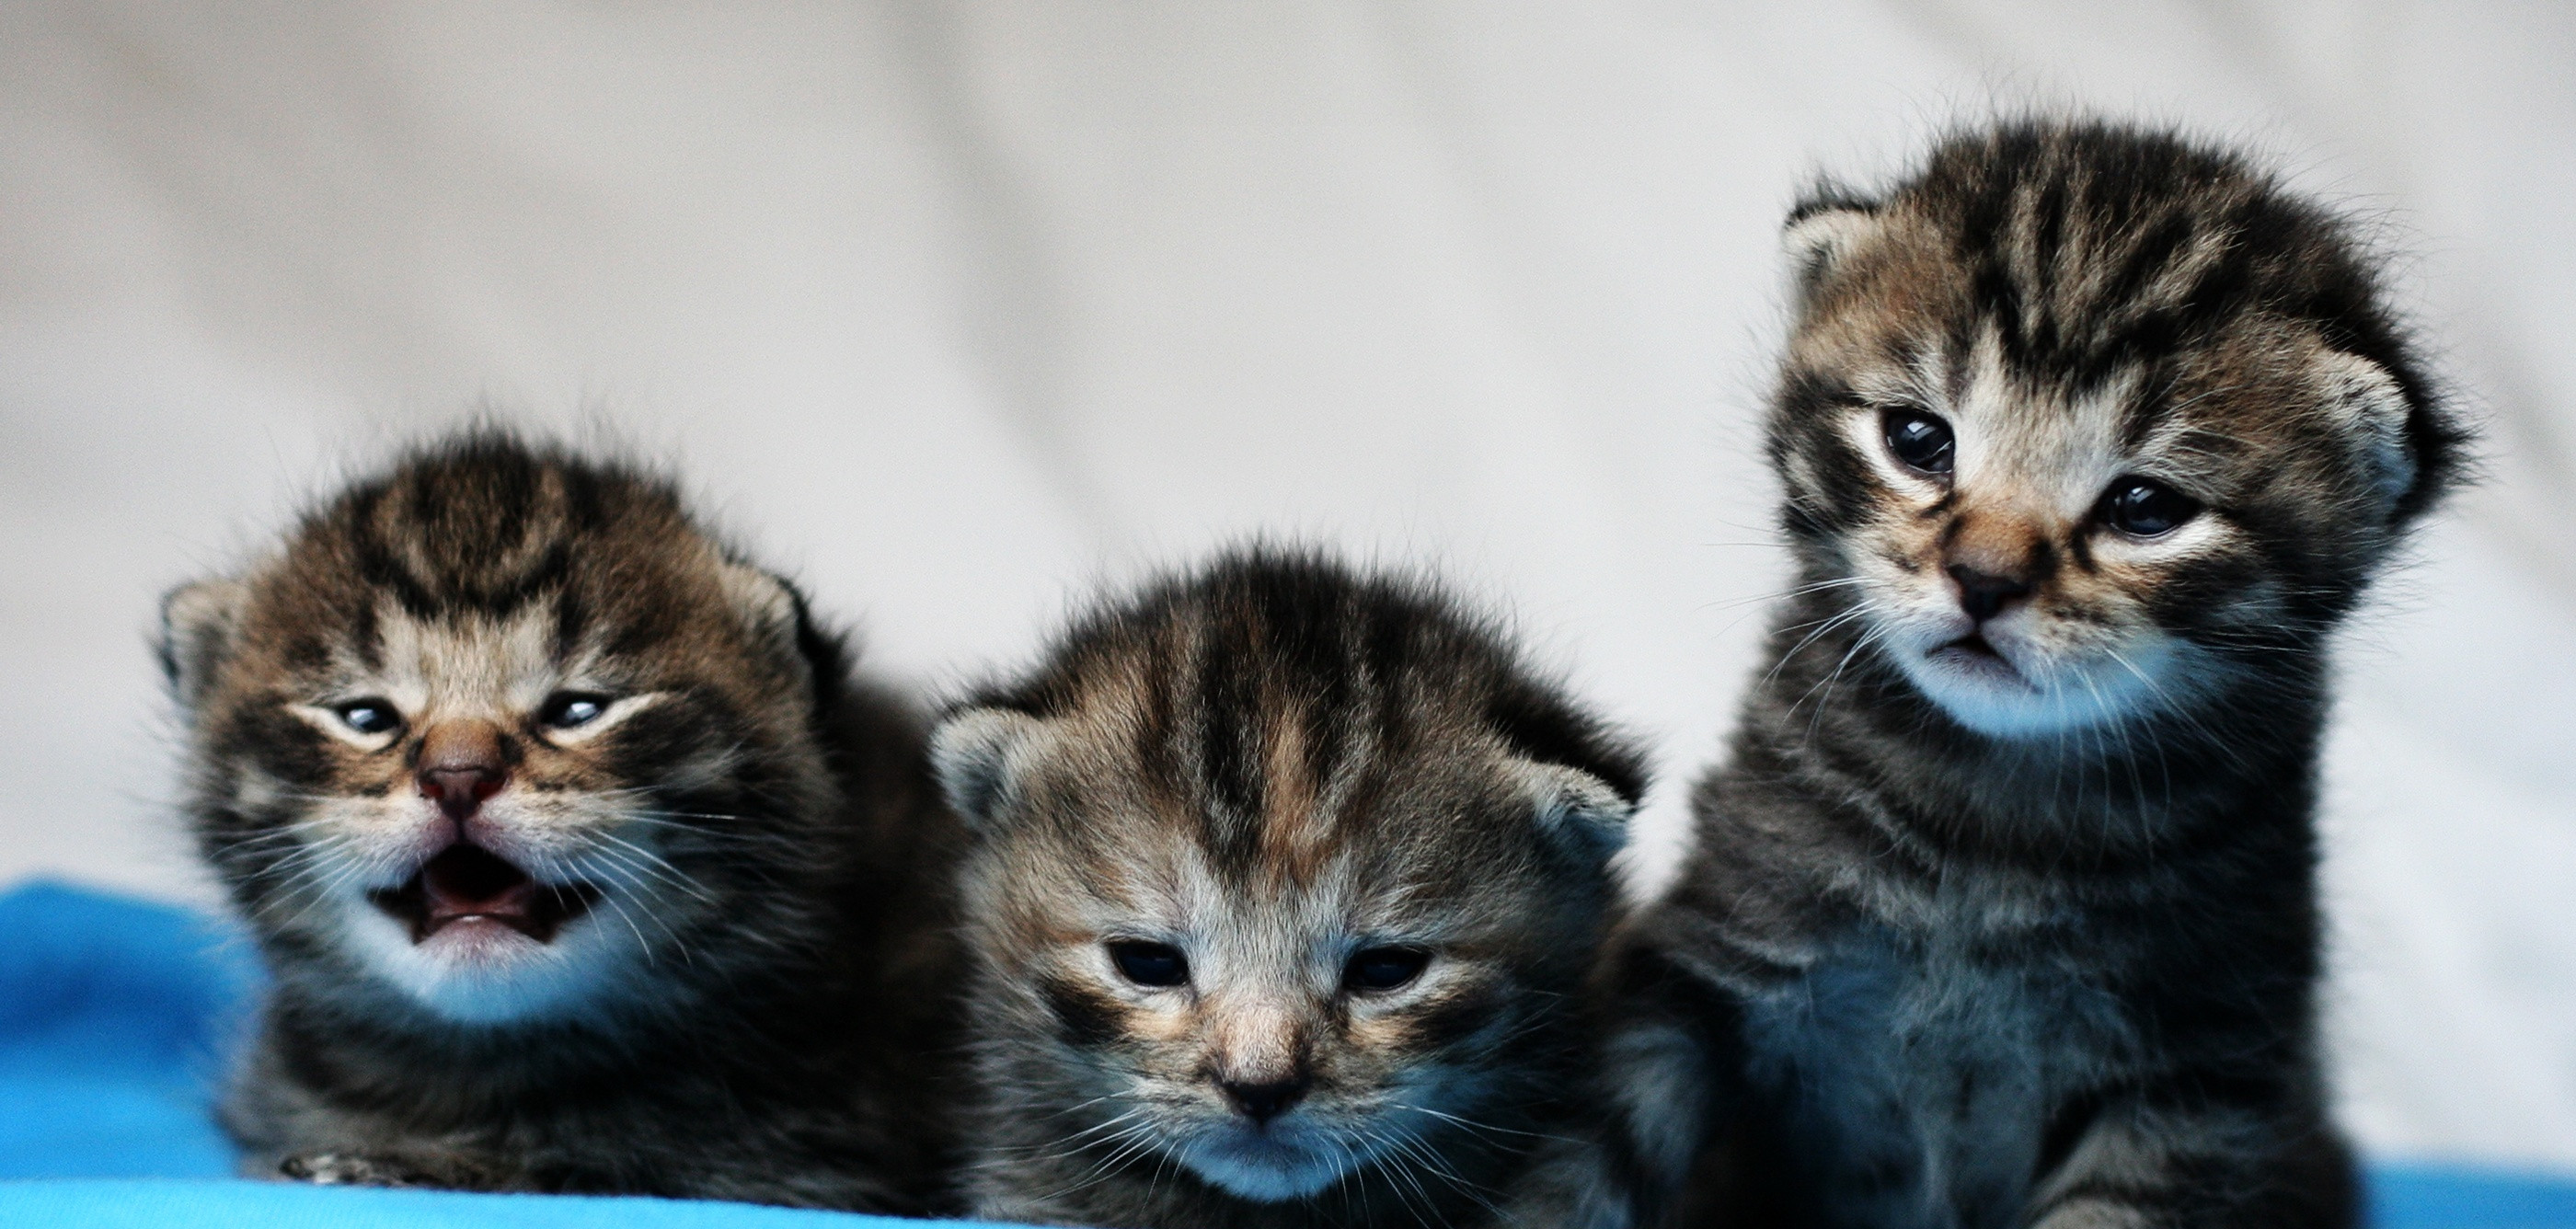 kittens by mathias-erhart, on Flickr